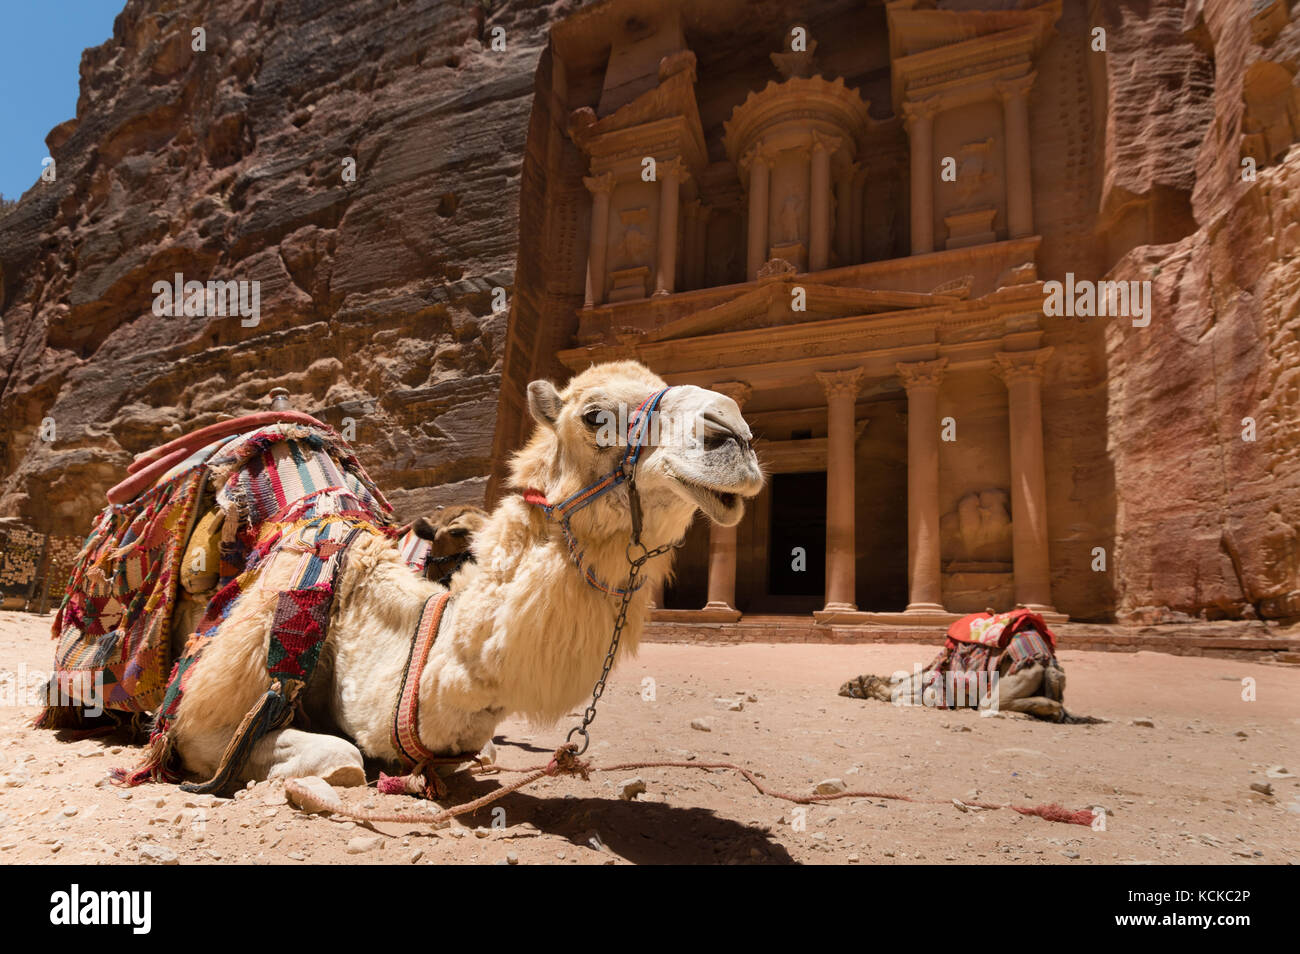 Two camels, used by local guides for tourists entertainment and transport, crouch in sand in front of the Treasury, - Stock Image